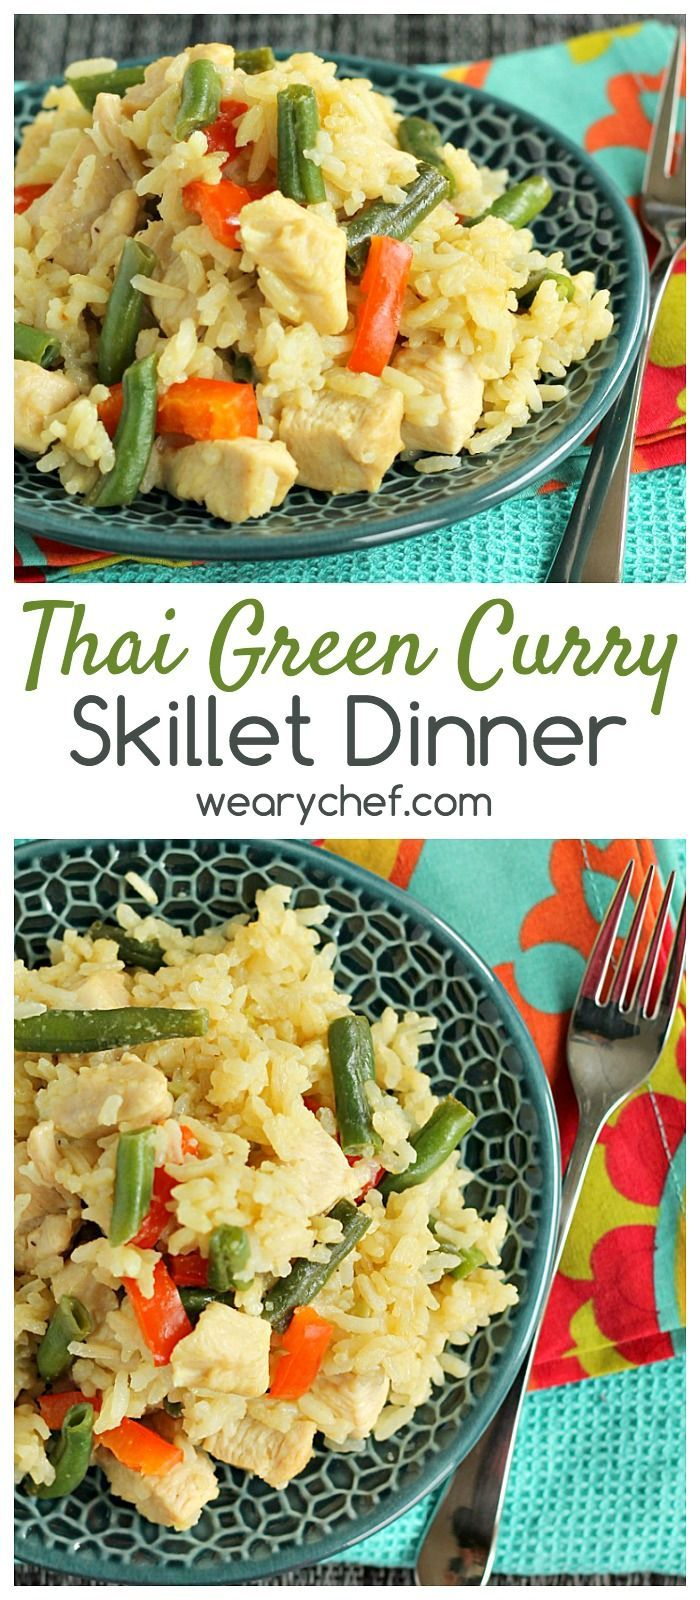 If you love Thai Green Curry and skillet dinners, this easy recipe will be one of your new favorites!